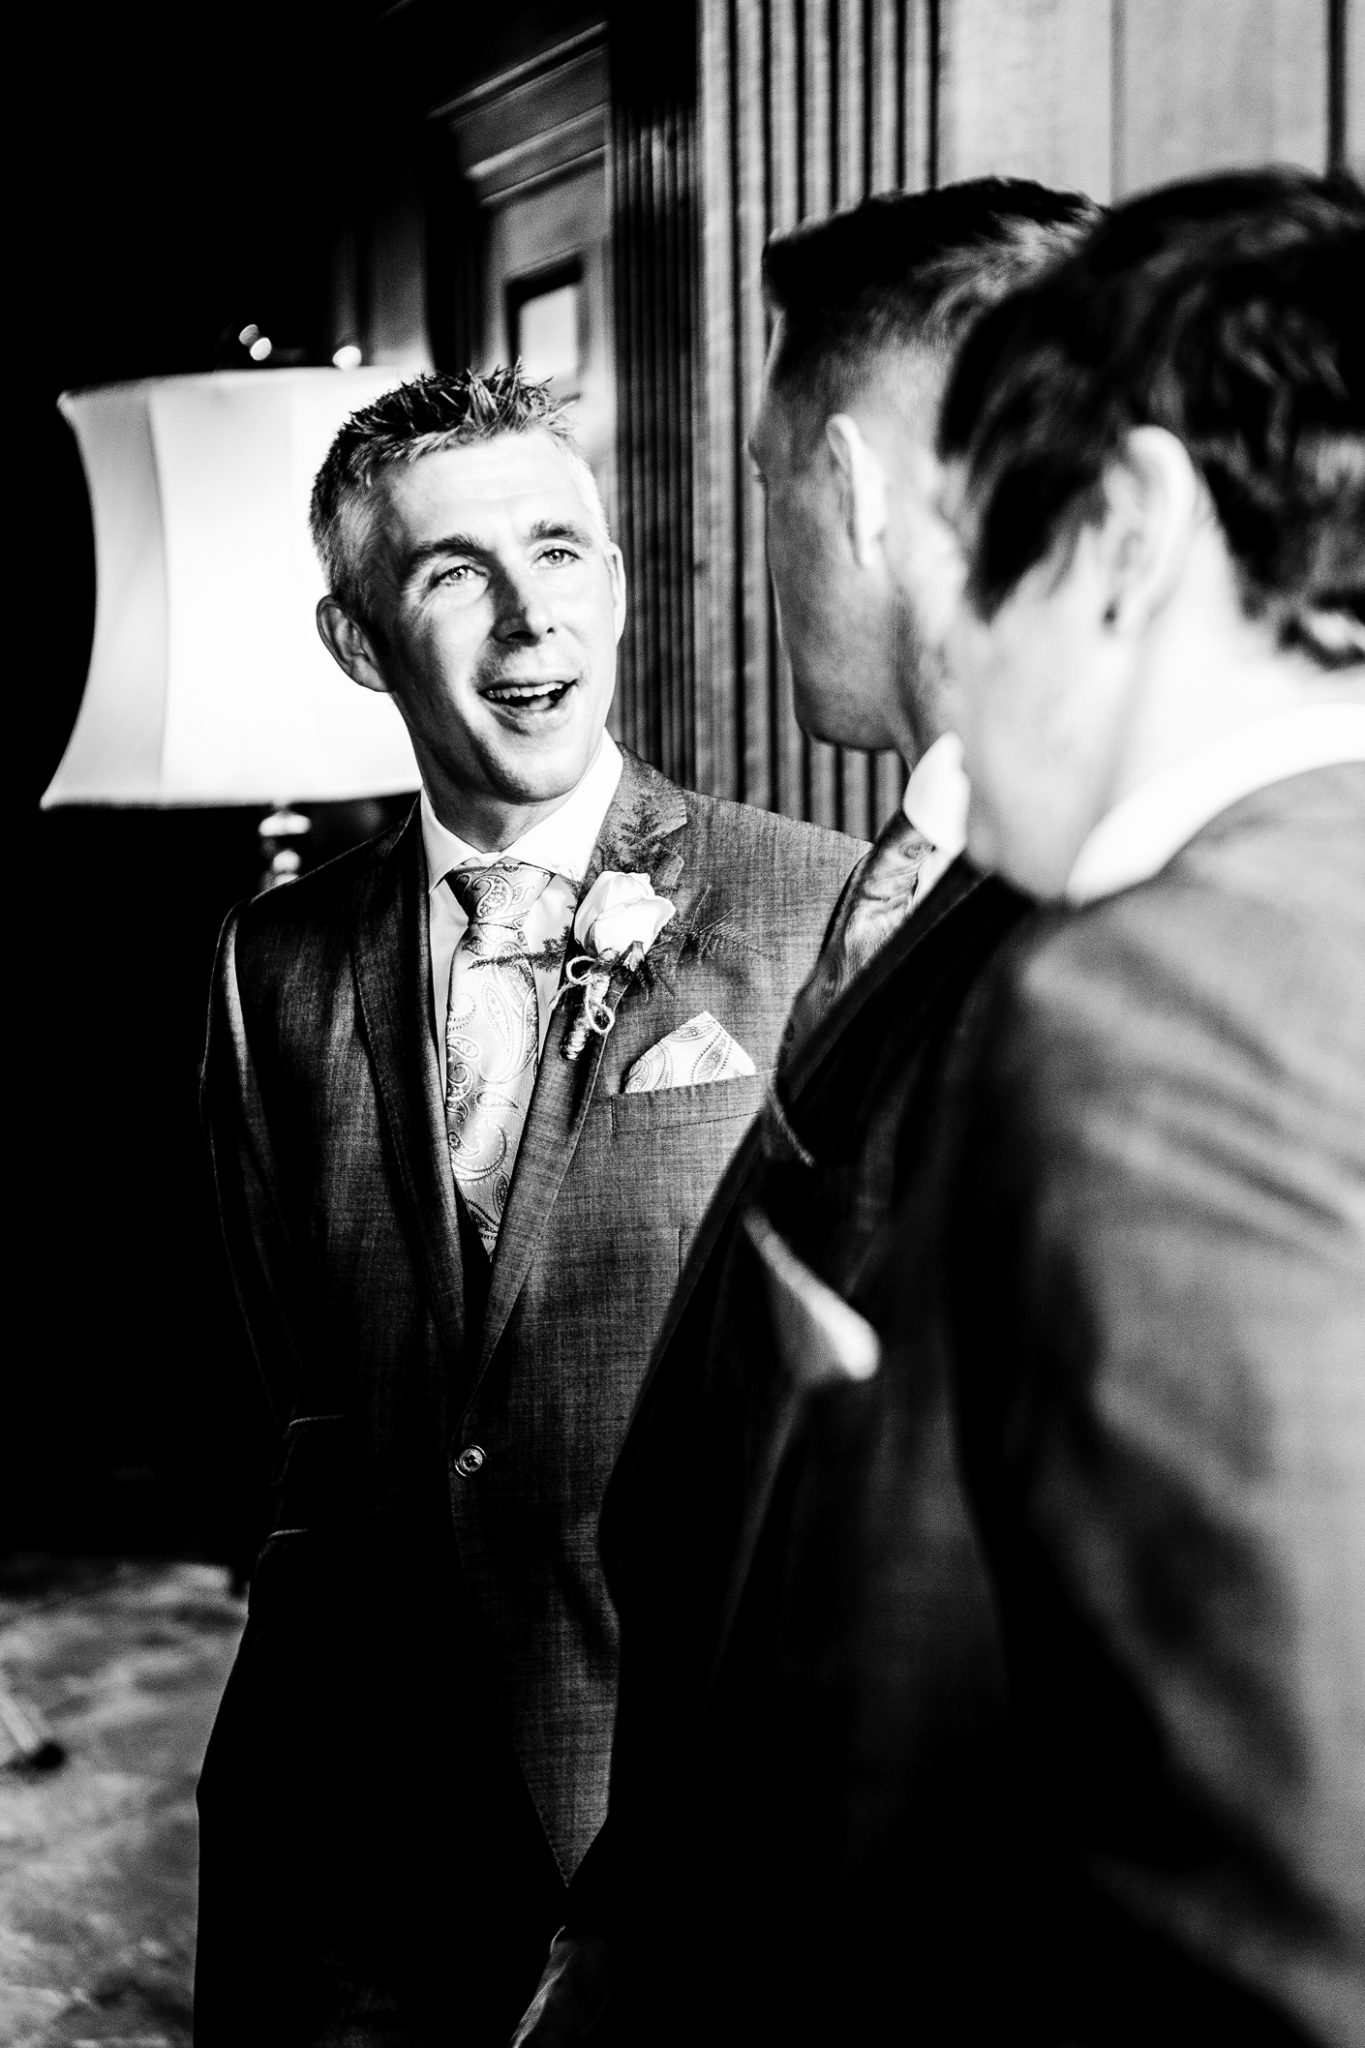 wedding-photography-of-the-groom-after-the-ceremony-at-adlington-hall-cheshire